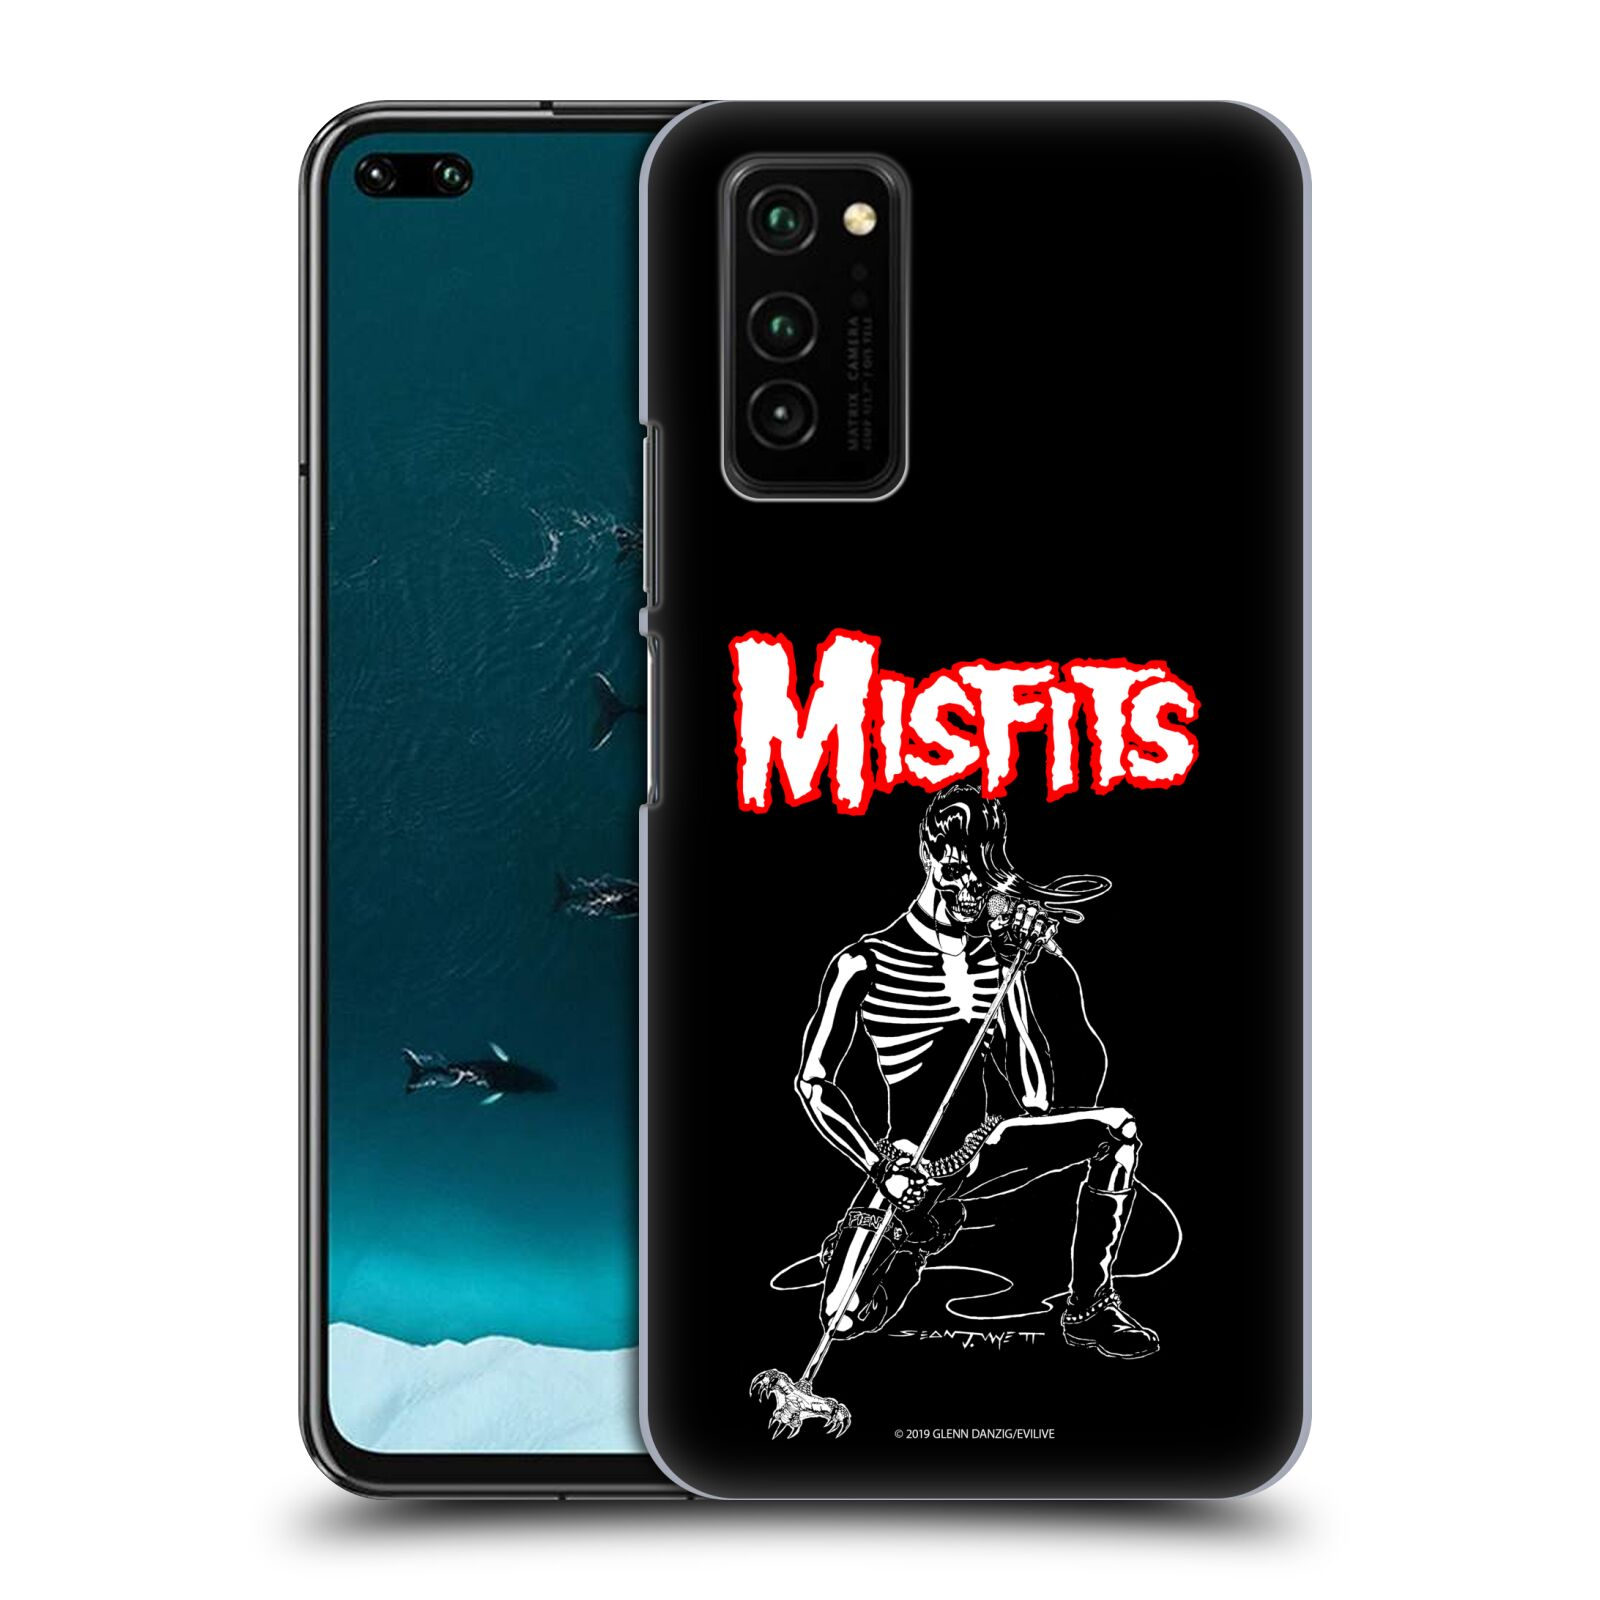 Official Misfits Band Art Legacy Of Brutality Case for Huawei Honor V30 / Honor View 30